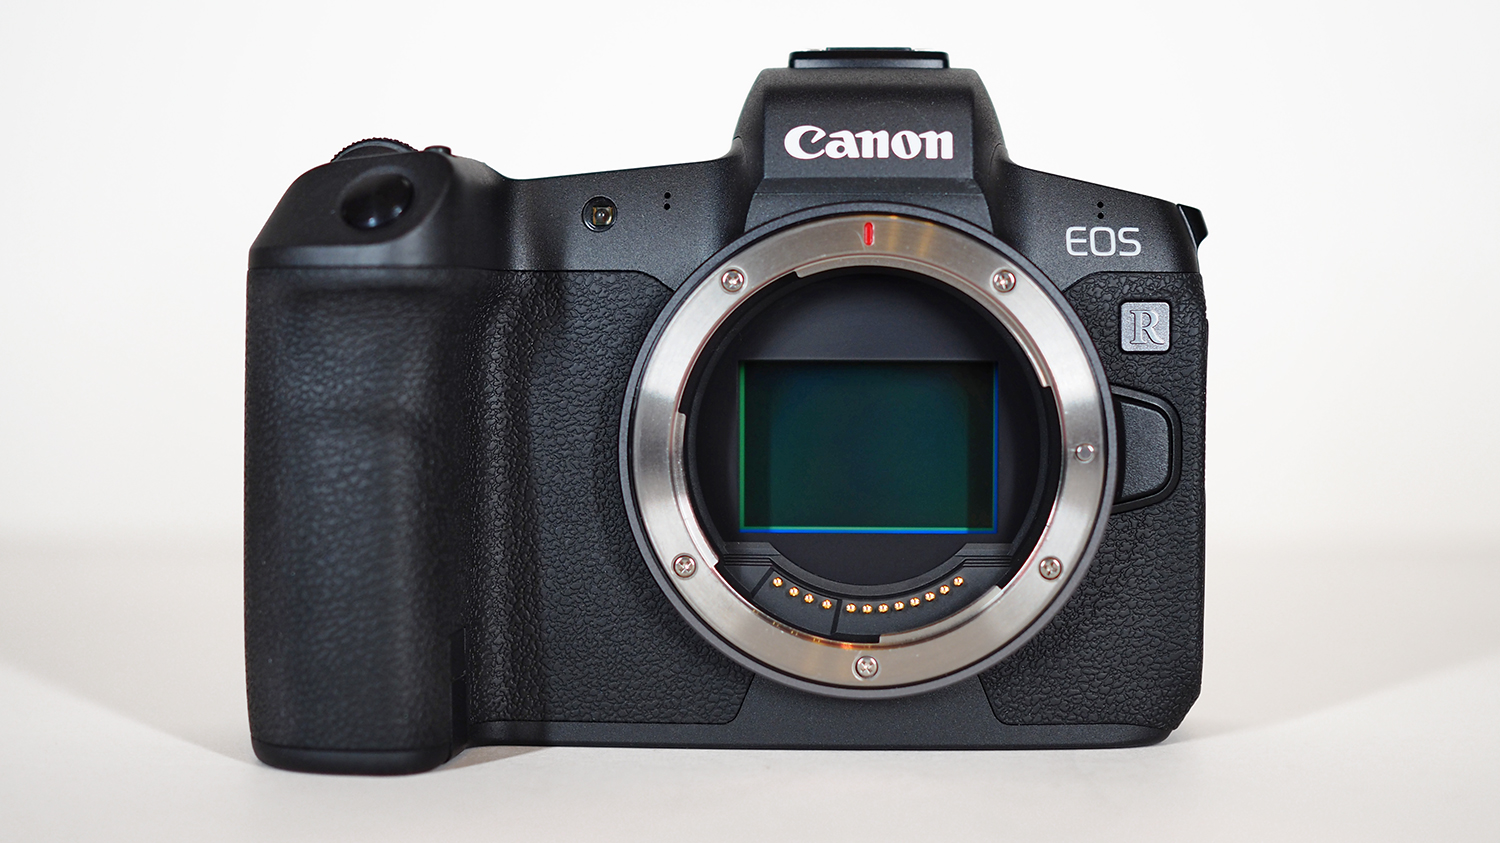 New Canon EOS R due in 2019 with 70MP sensor, IBIS, dual card slots